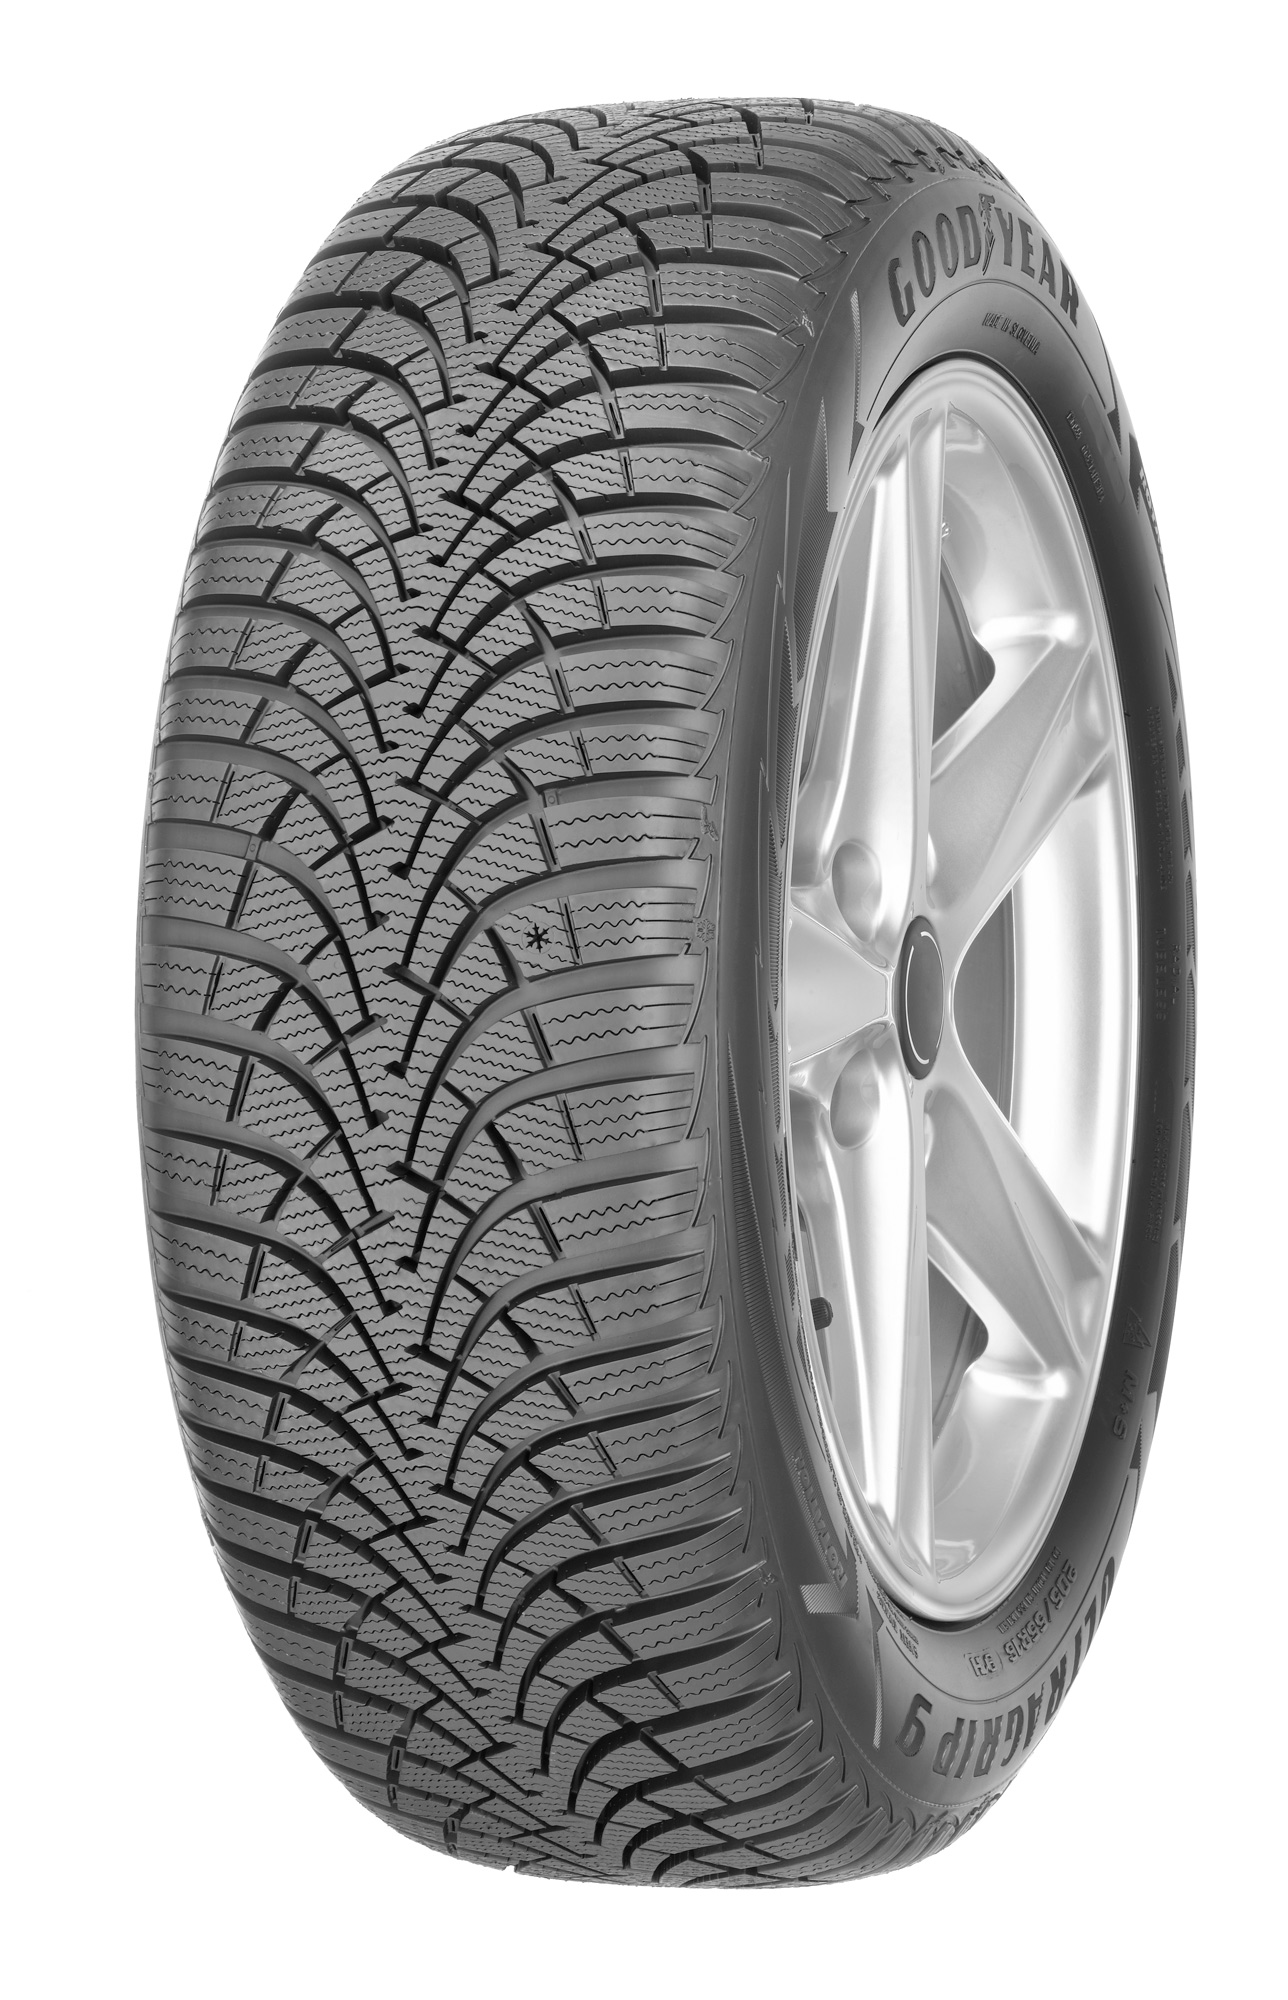 Gomme Nuove Goodyear 185/60 R14 82T UG 9 M+S (100%) pneumatici nuovi Invernale